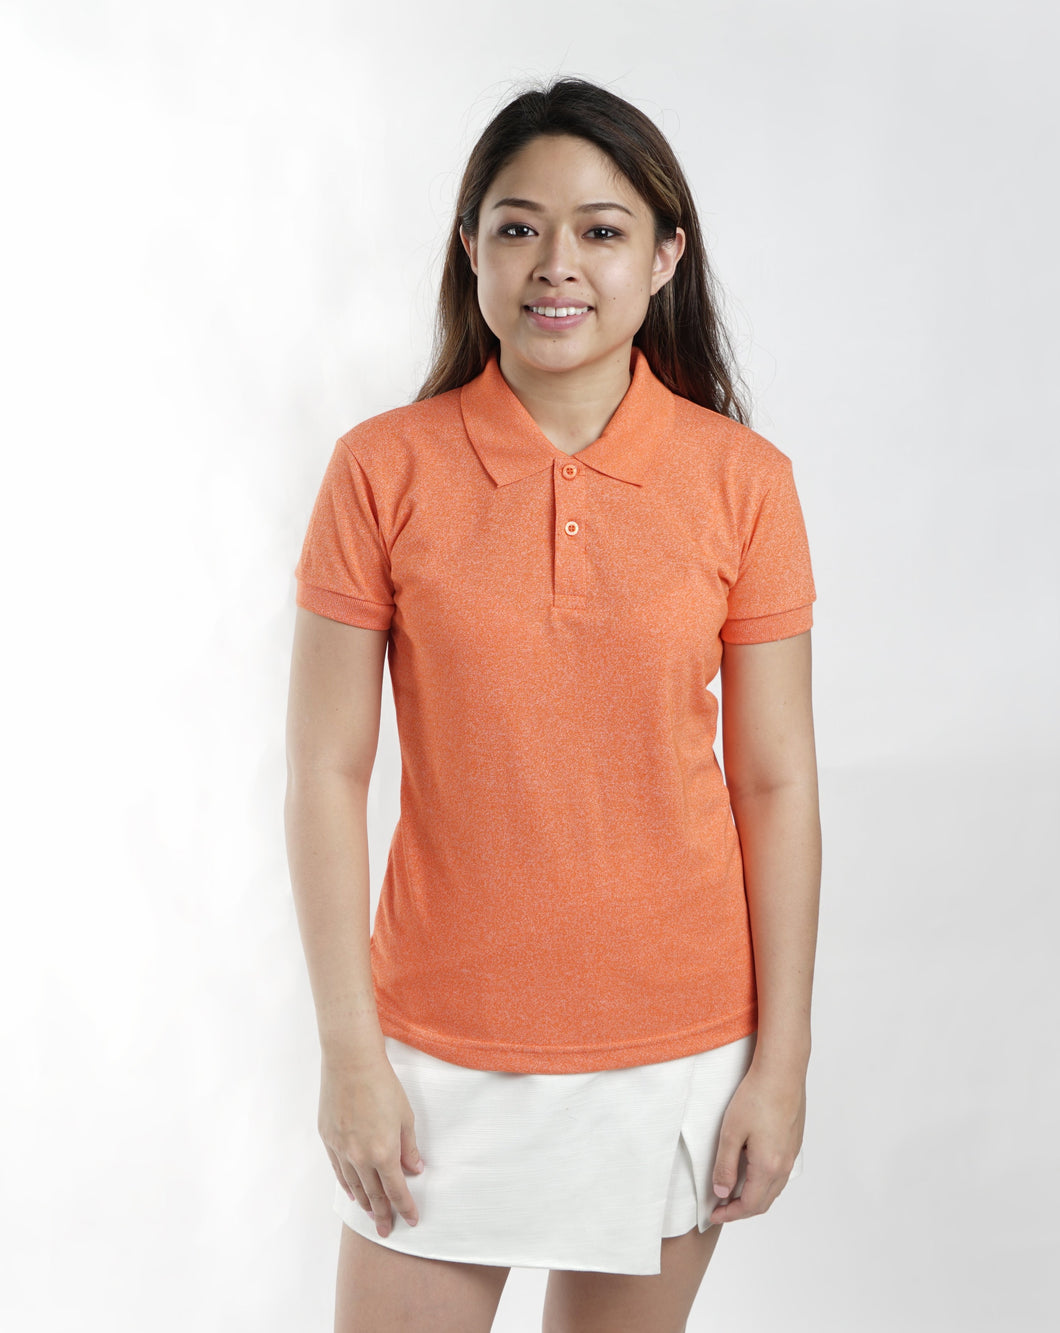 Acid Ponkan Classique Plain Women's Polo Shirt